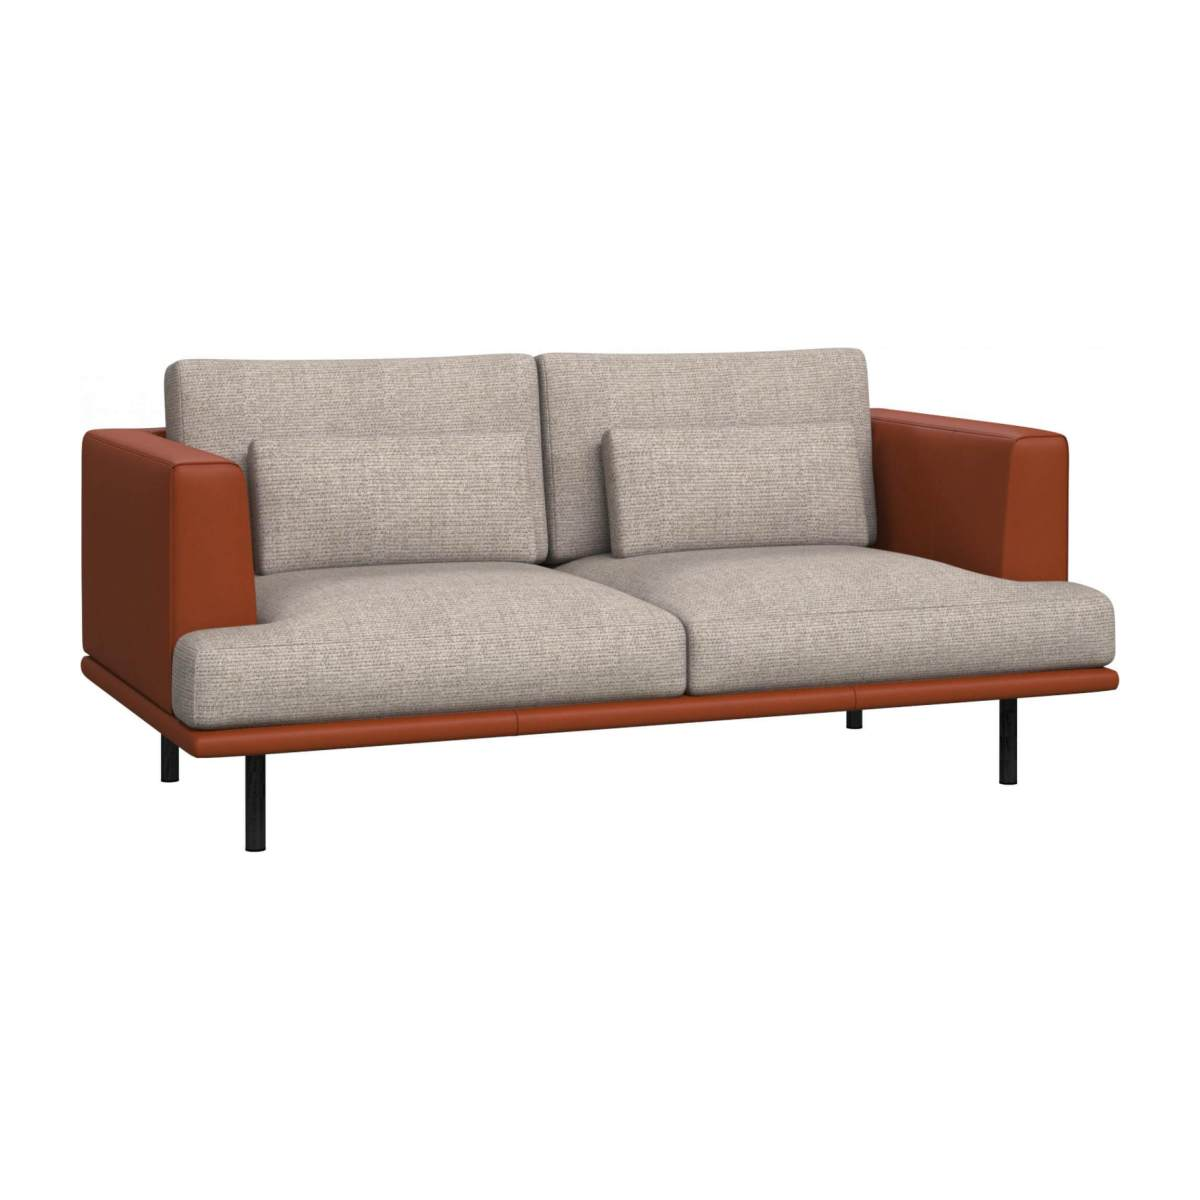 2 seater sofa in Lecce fabric, nature with base and armrests in brown leather n°1